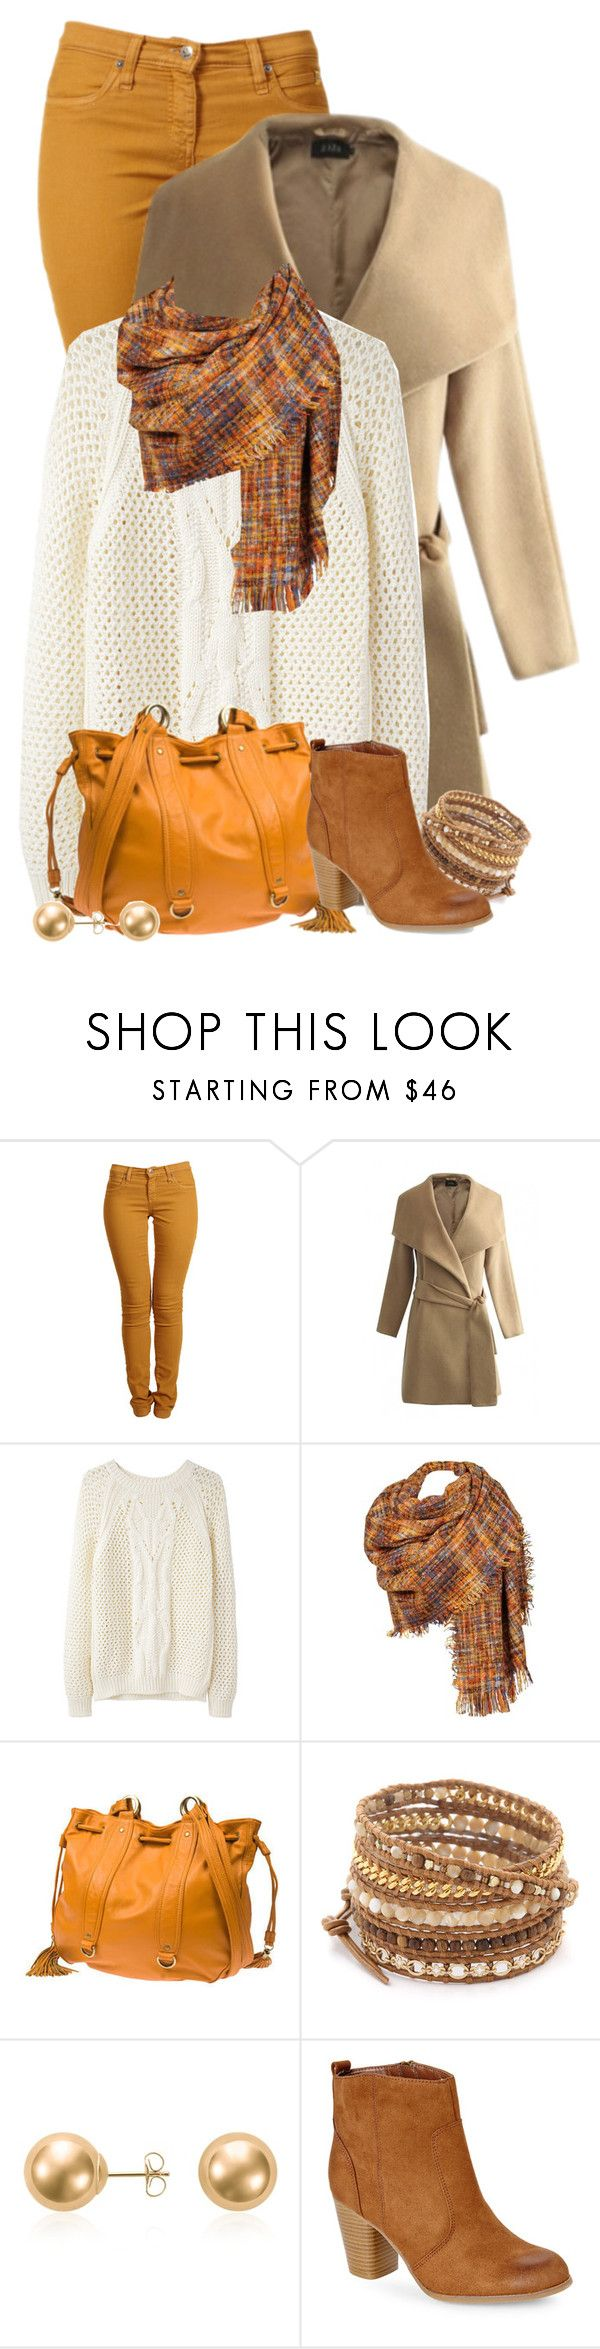 """""""Winter Mustard Jeans Outfit"""" by superstylist ❤ liked on Polyvore featuring Second, Vanessa Bruno Athé, Black Rivet, Chan Luu, Blue Nile, Madden Girl, women's clothing, women's fashion, women and female"""